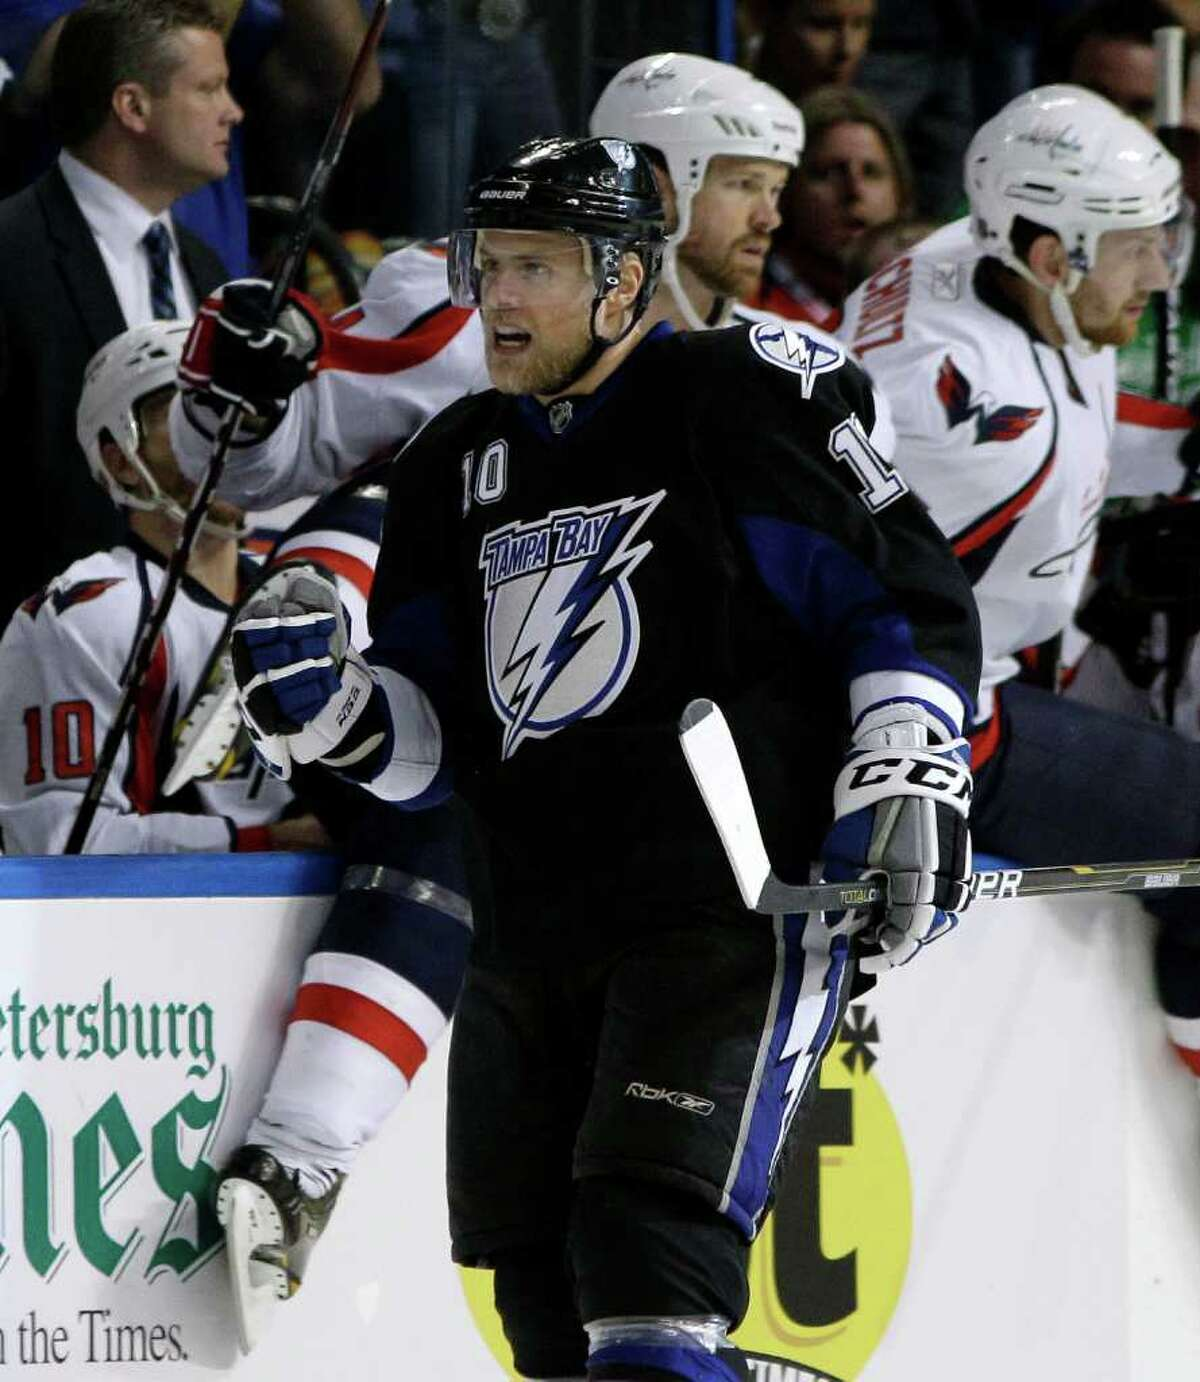 Tampa Bay Lightning left wing Sean Bergenheim (10), of Finland, pumps his fist as he skates past the Washington Capitals bench after his goal during the first period in Game 3 of an NHL hockey Stanley Cup playoffs Eastern Conference semifinal series Tuesday, May 3, 2011, in Tampa, Fla. (AP Photo/Chris O'Meara)